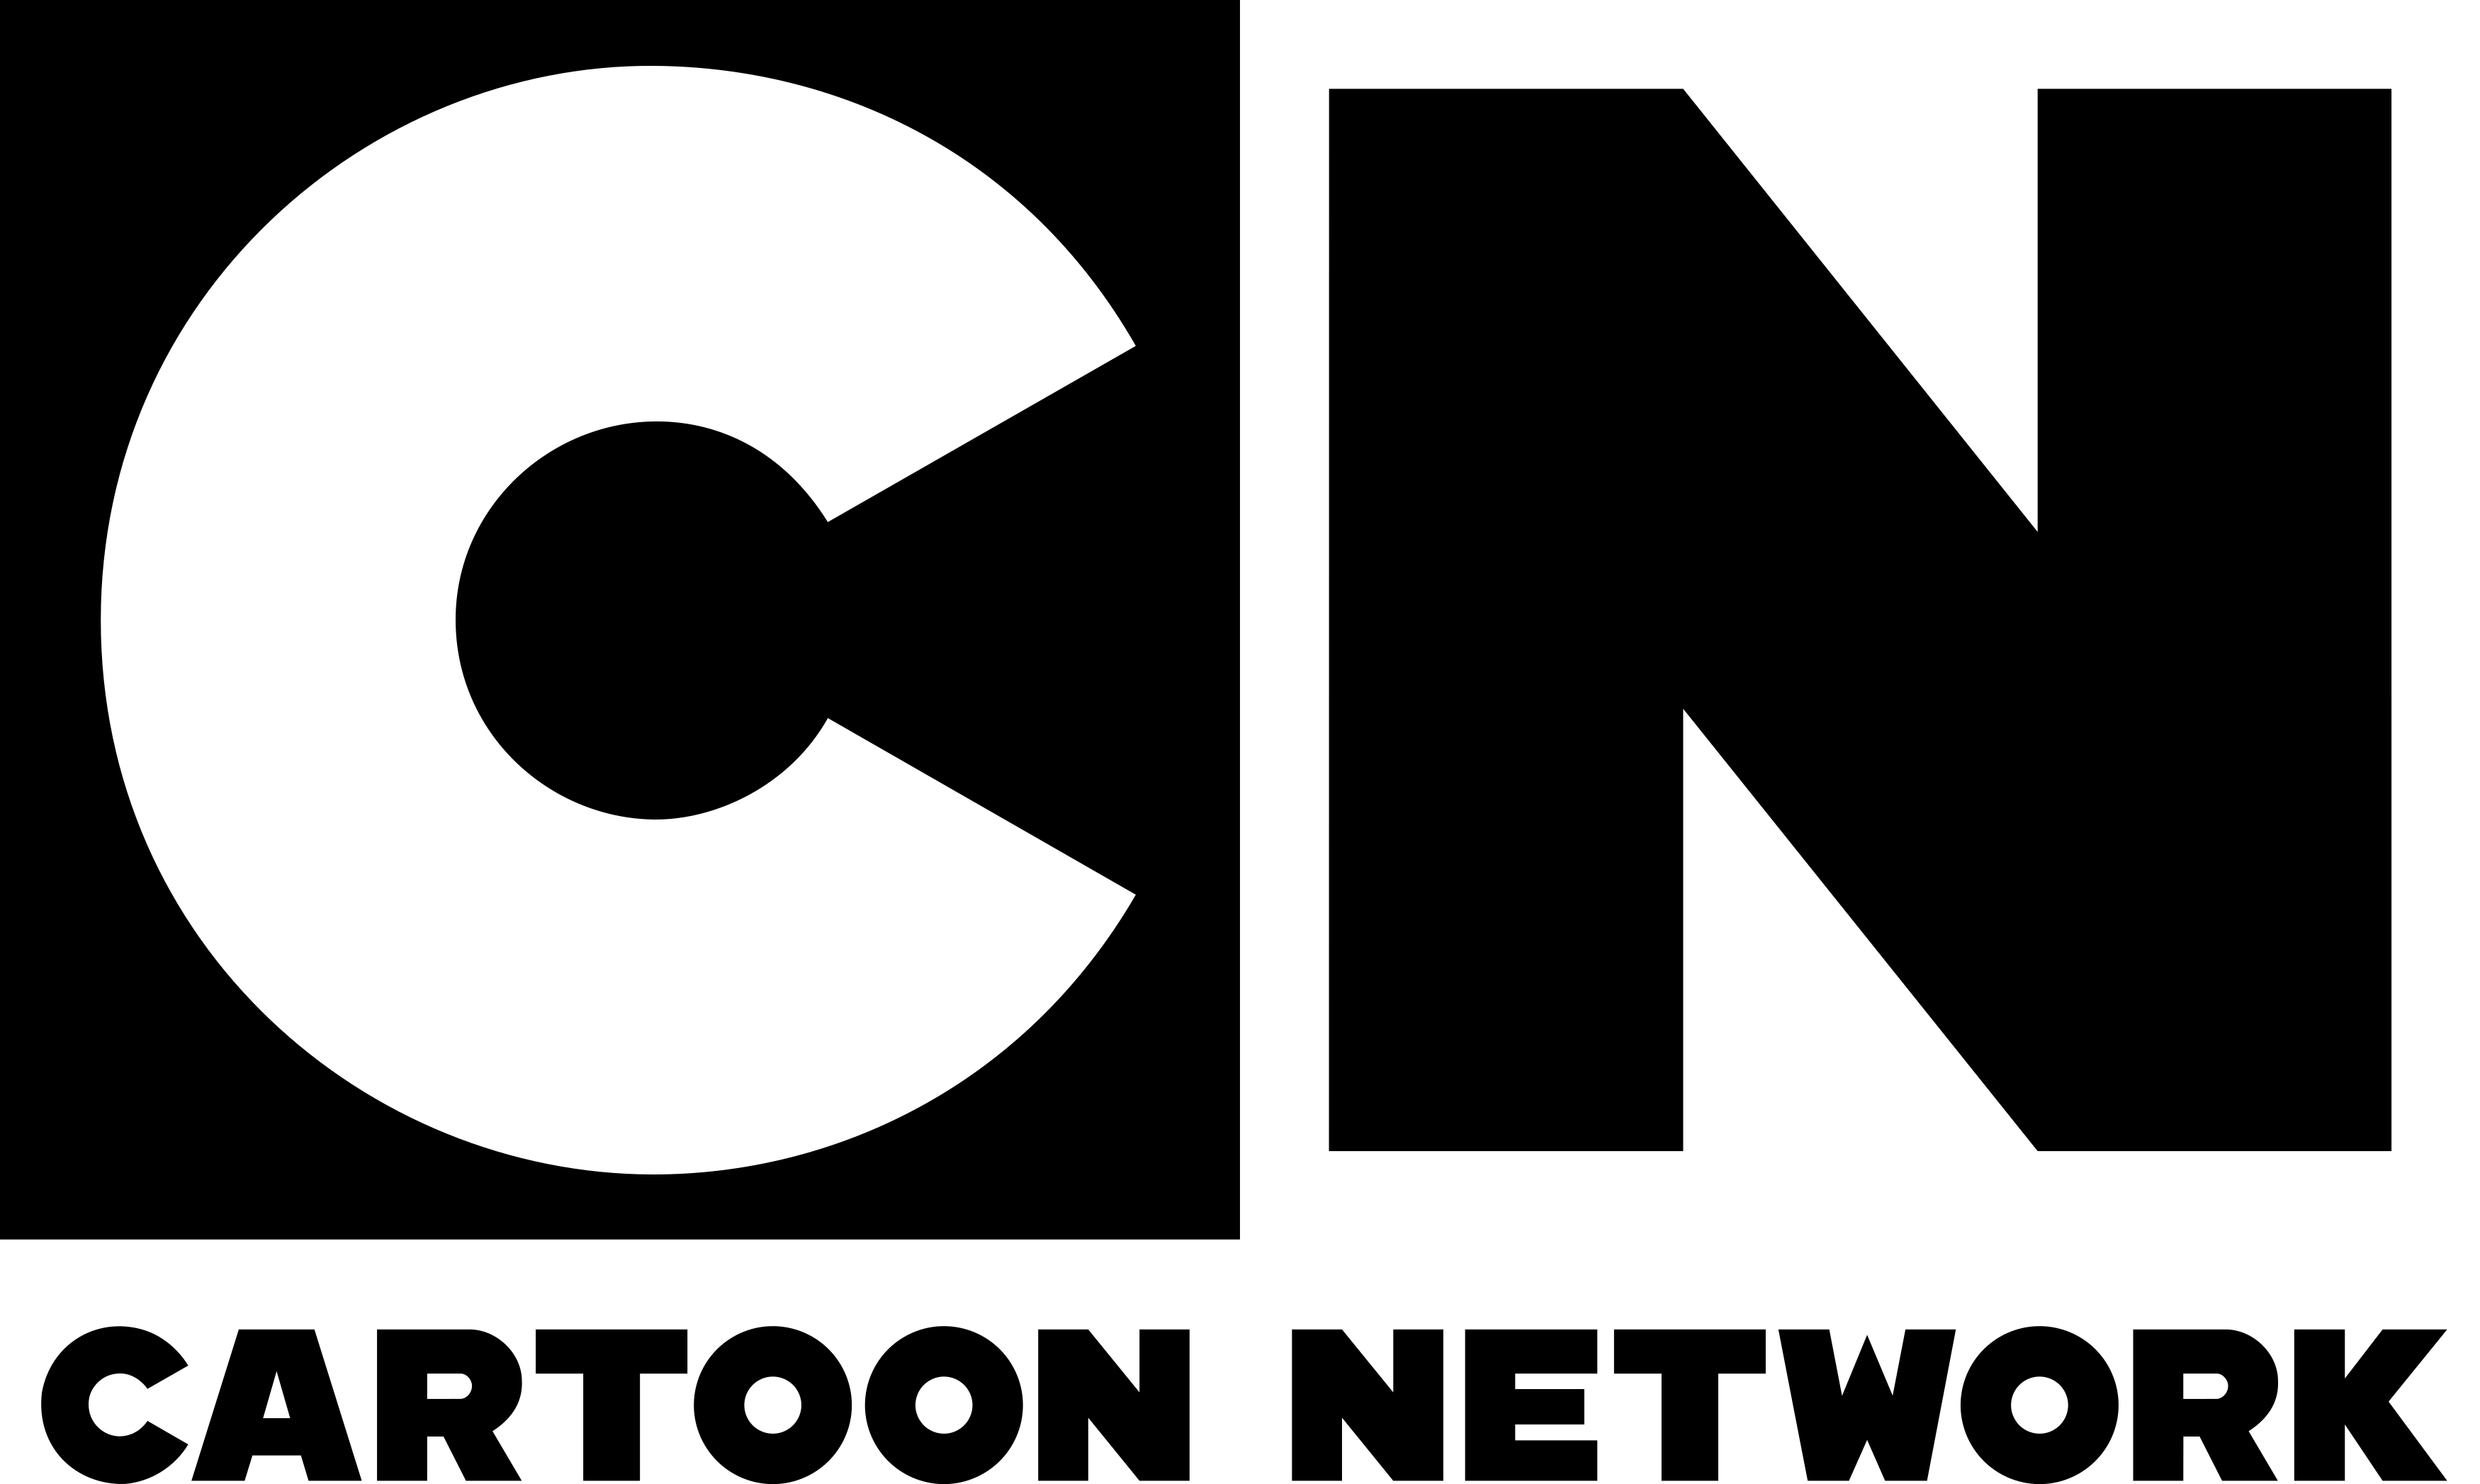 cartoon network logo.